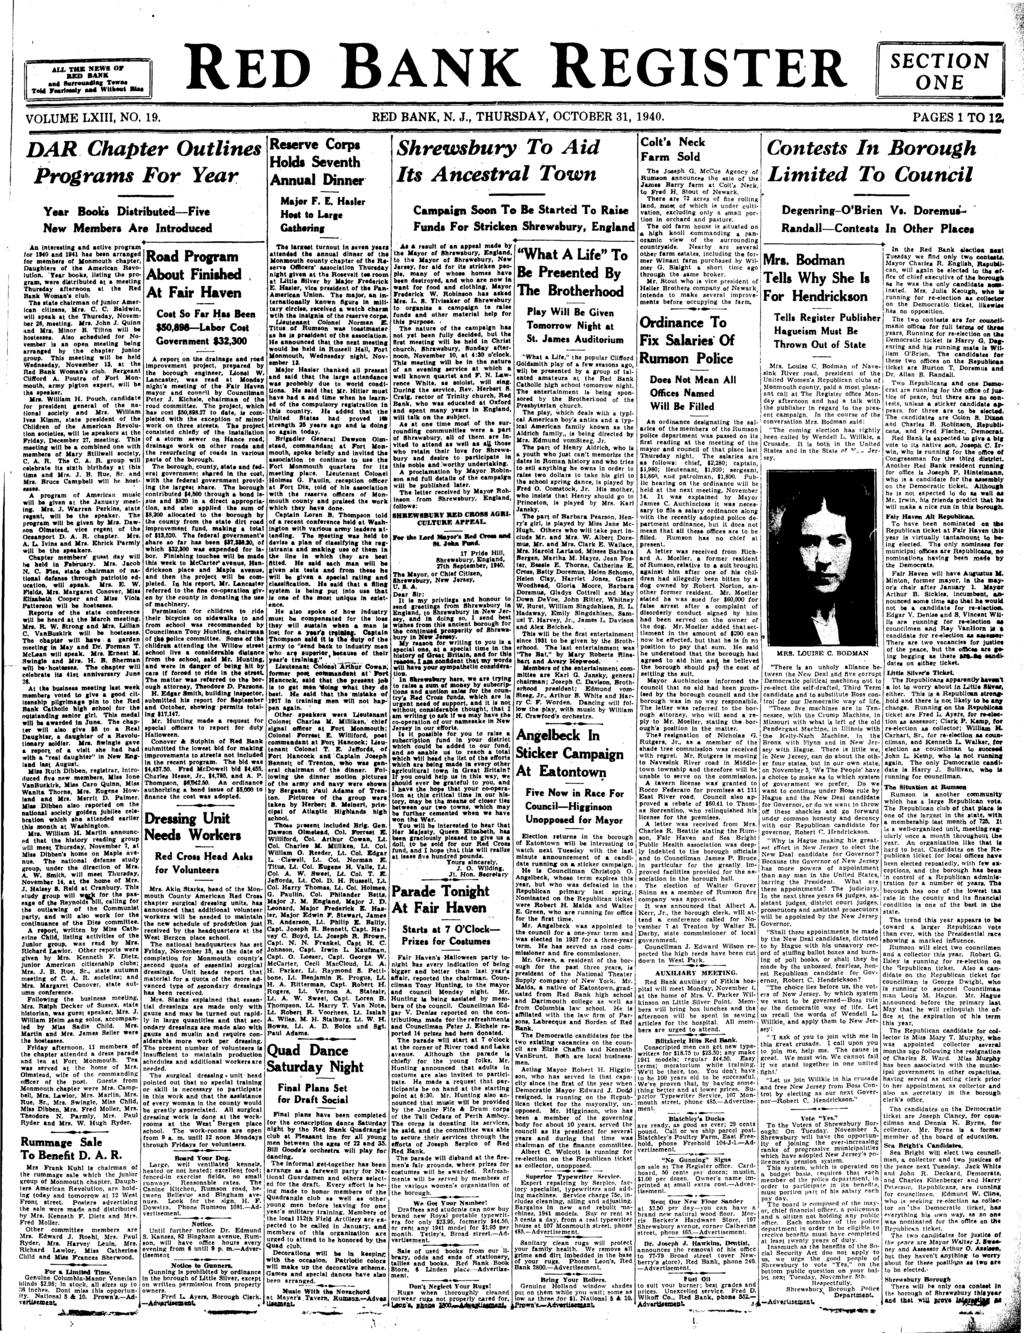 AIX THK NEWS OF BANK TH BED BANK tf T na Tewne na Burrmiatff ToM Fearlessly urf Without MM RED BANK REGISTER SECTION ONE VOLUME LXIII, NO. 19. RED BANK, N. J., THURSDAY, OCTOBER 31, 1940.